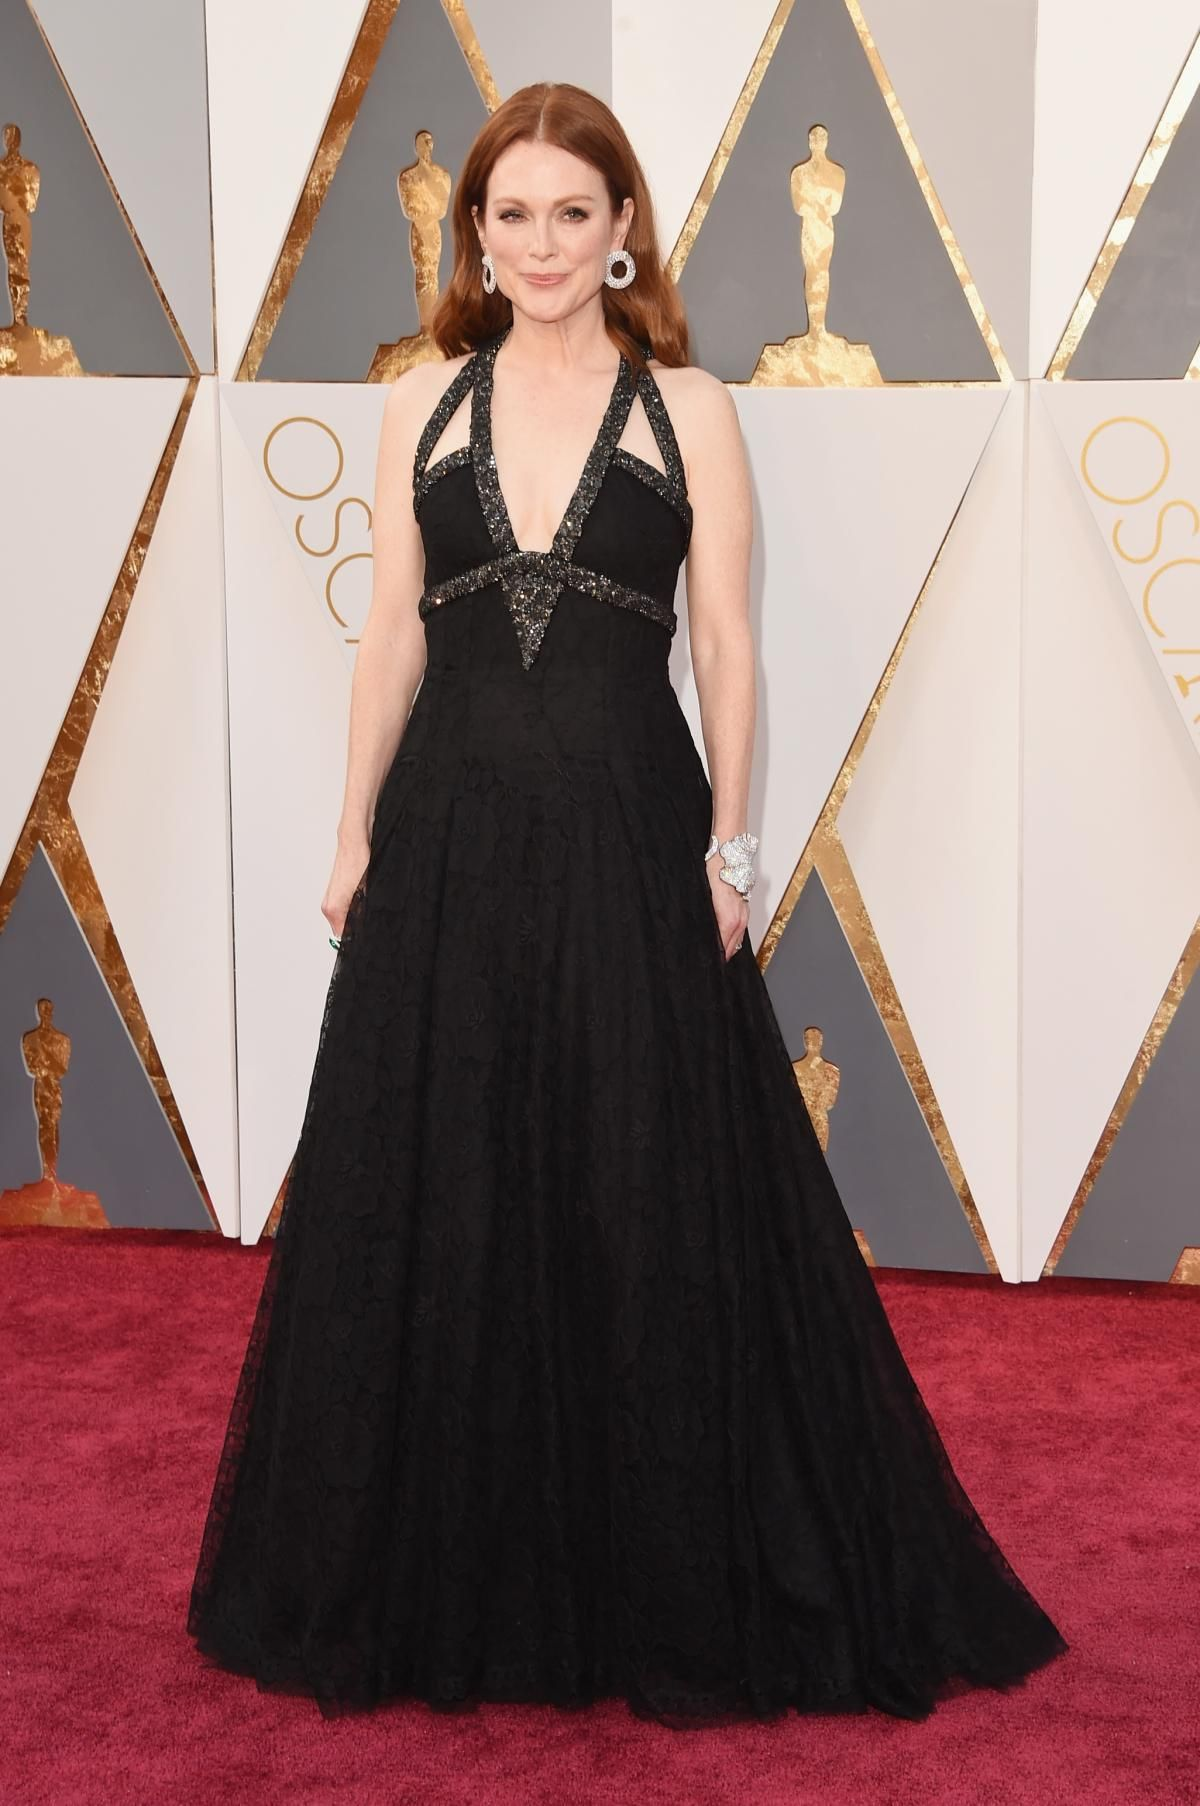 Julianne Moore wears Chanel Haute Couture on the Oscars red carpet. Photo: Jason Merritt/Getty Images.